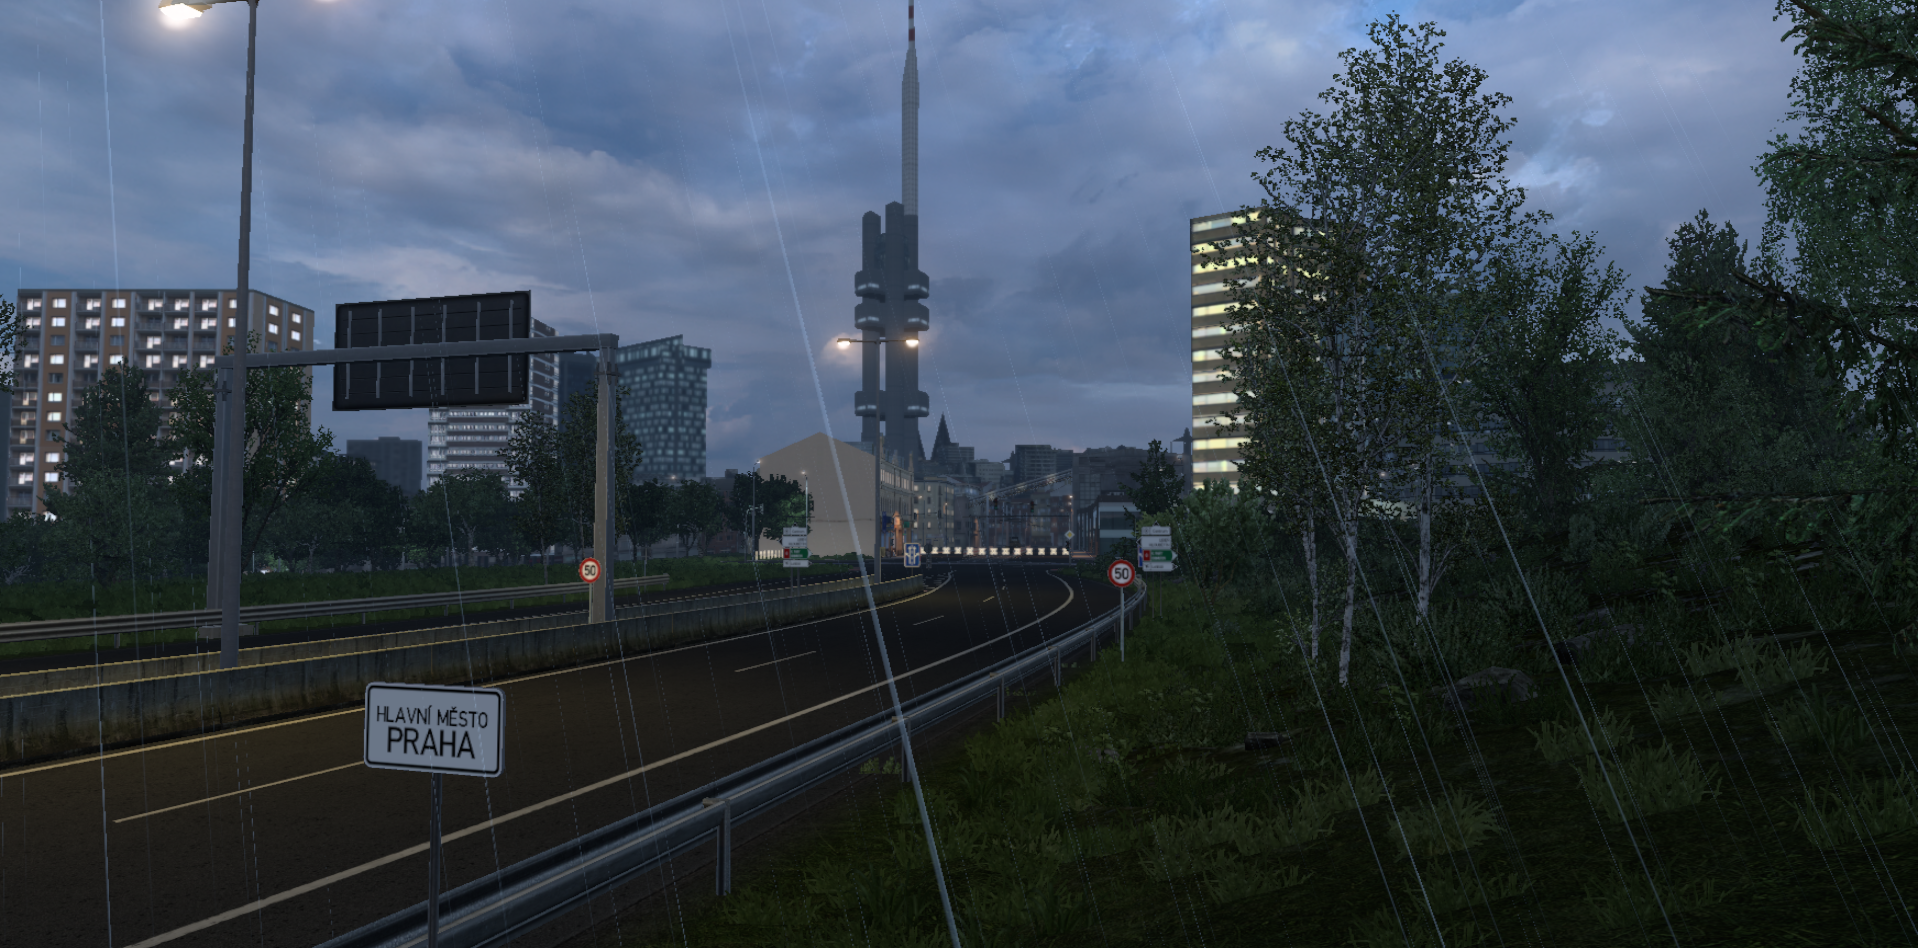 ets2_20210804_144311_00.png